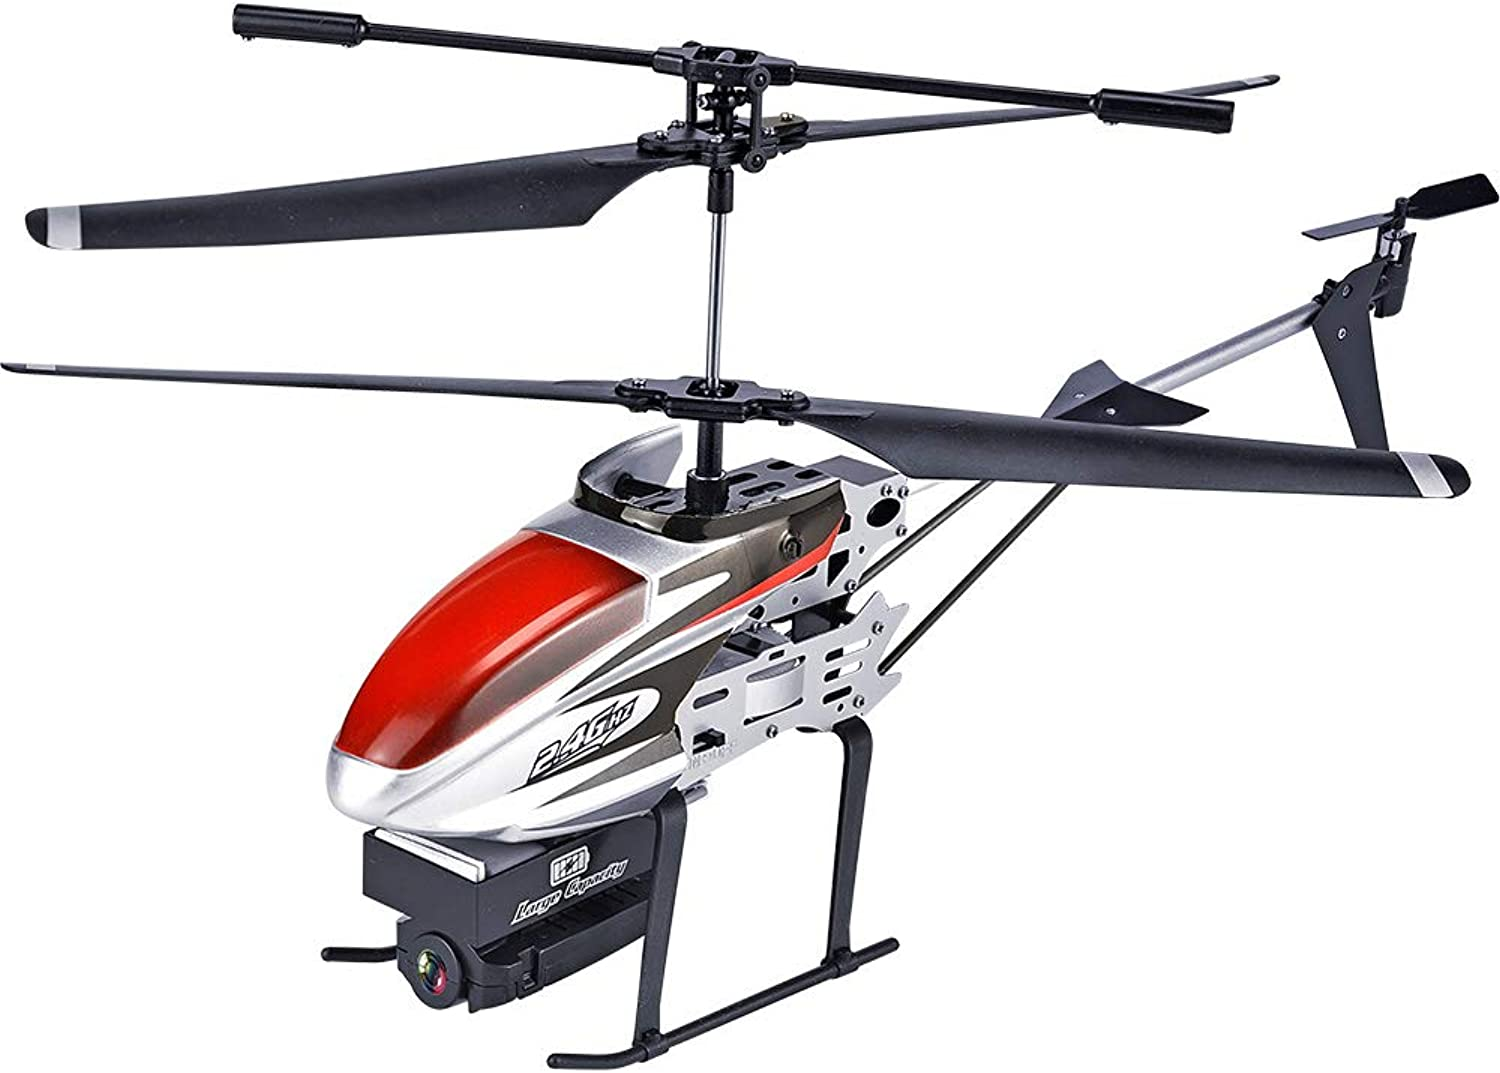 HUAXING RC Helicopter, 2.4GHz 3.5CH Drone Gesture Photo WiFi FPV 1080P HD Camera Attitude Hold One Key Off Land RTF,Red